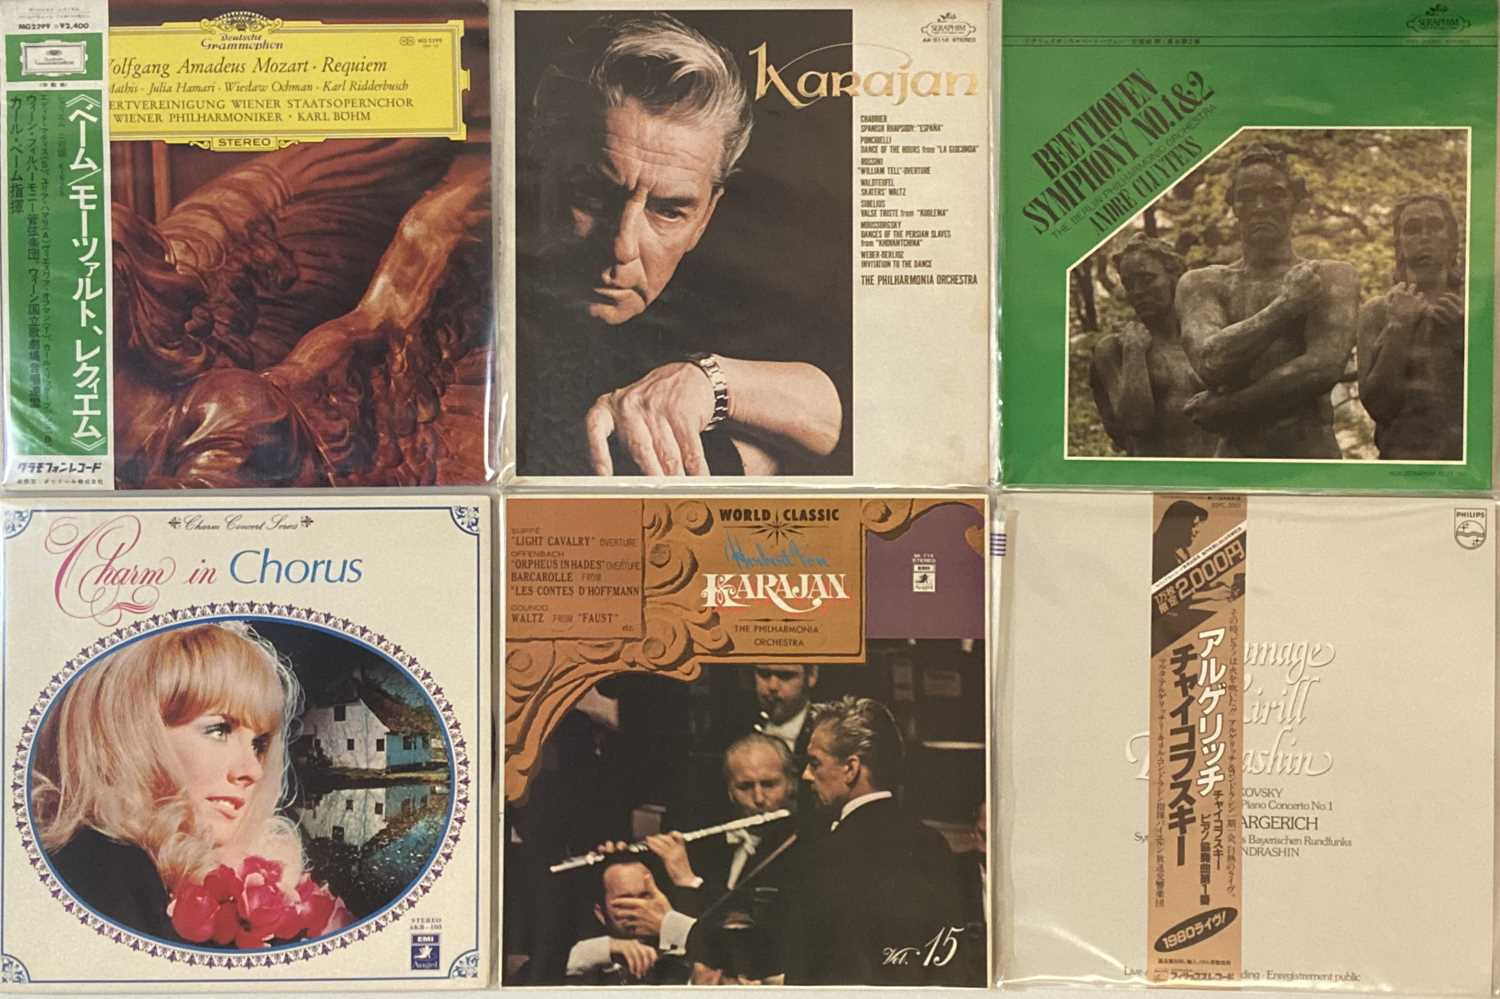 CLASSICAL - JAPANESE PRESSING LPs - Image 2 of 6